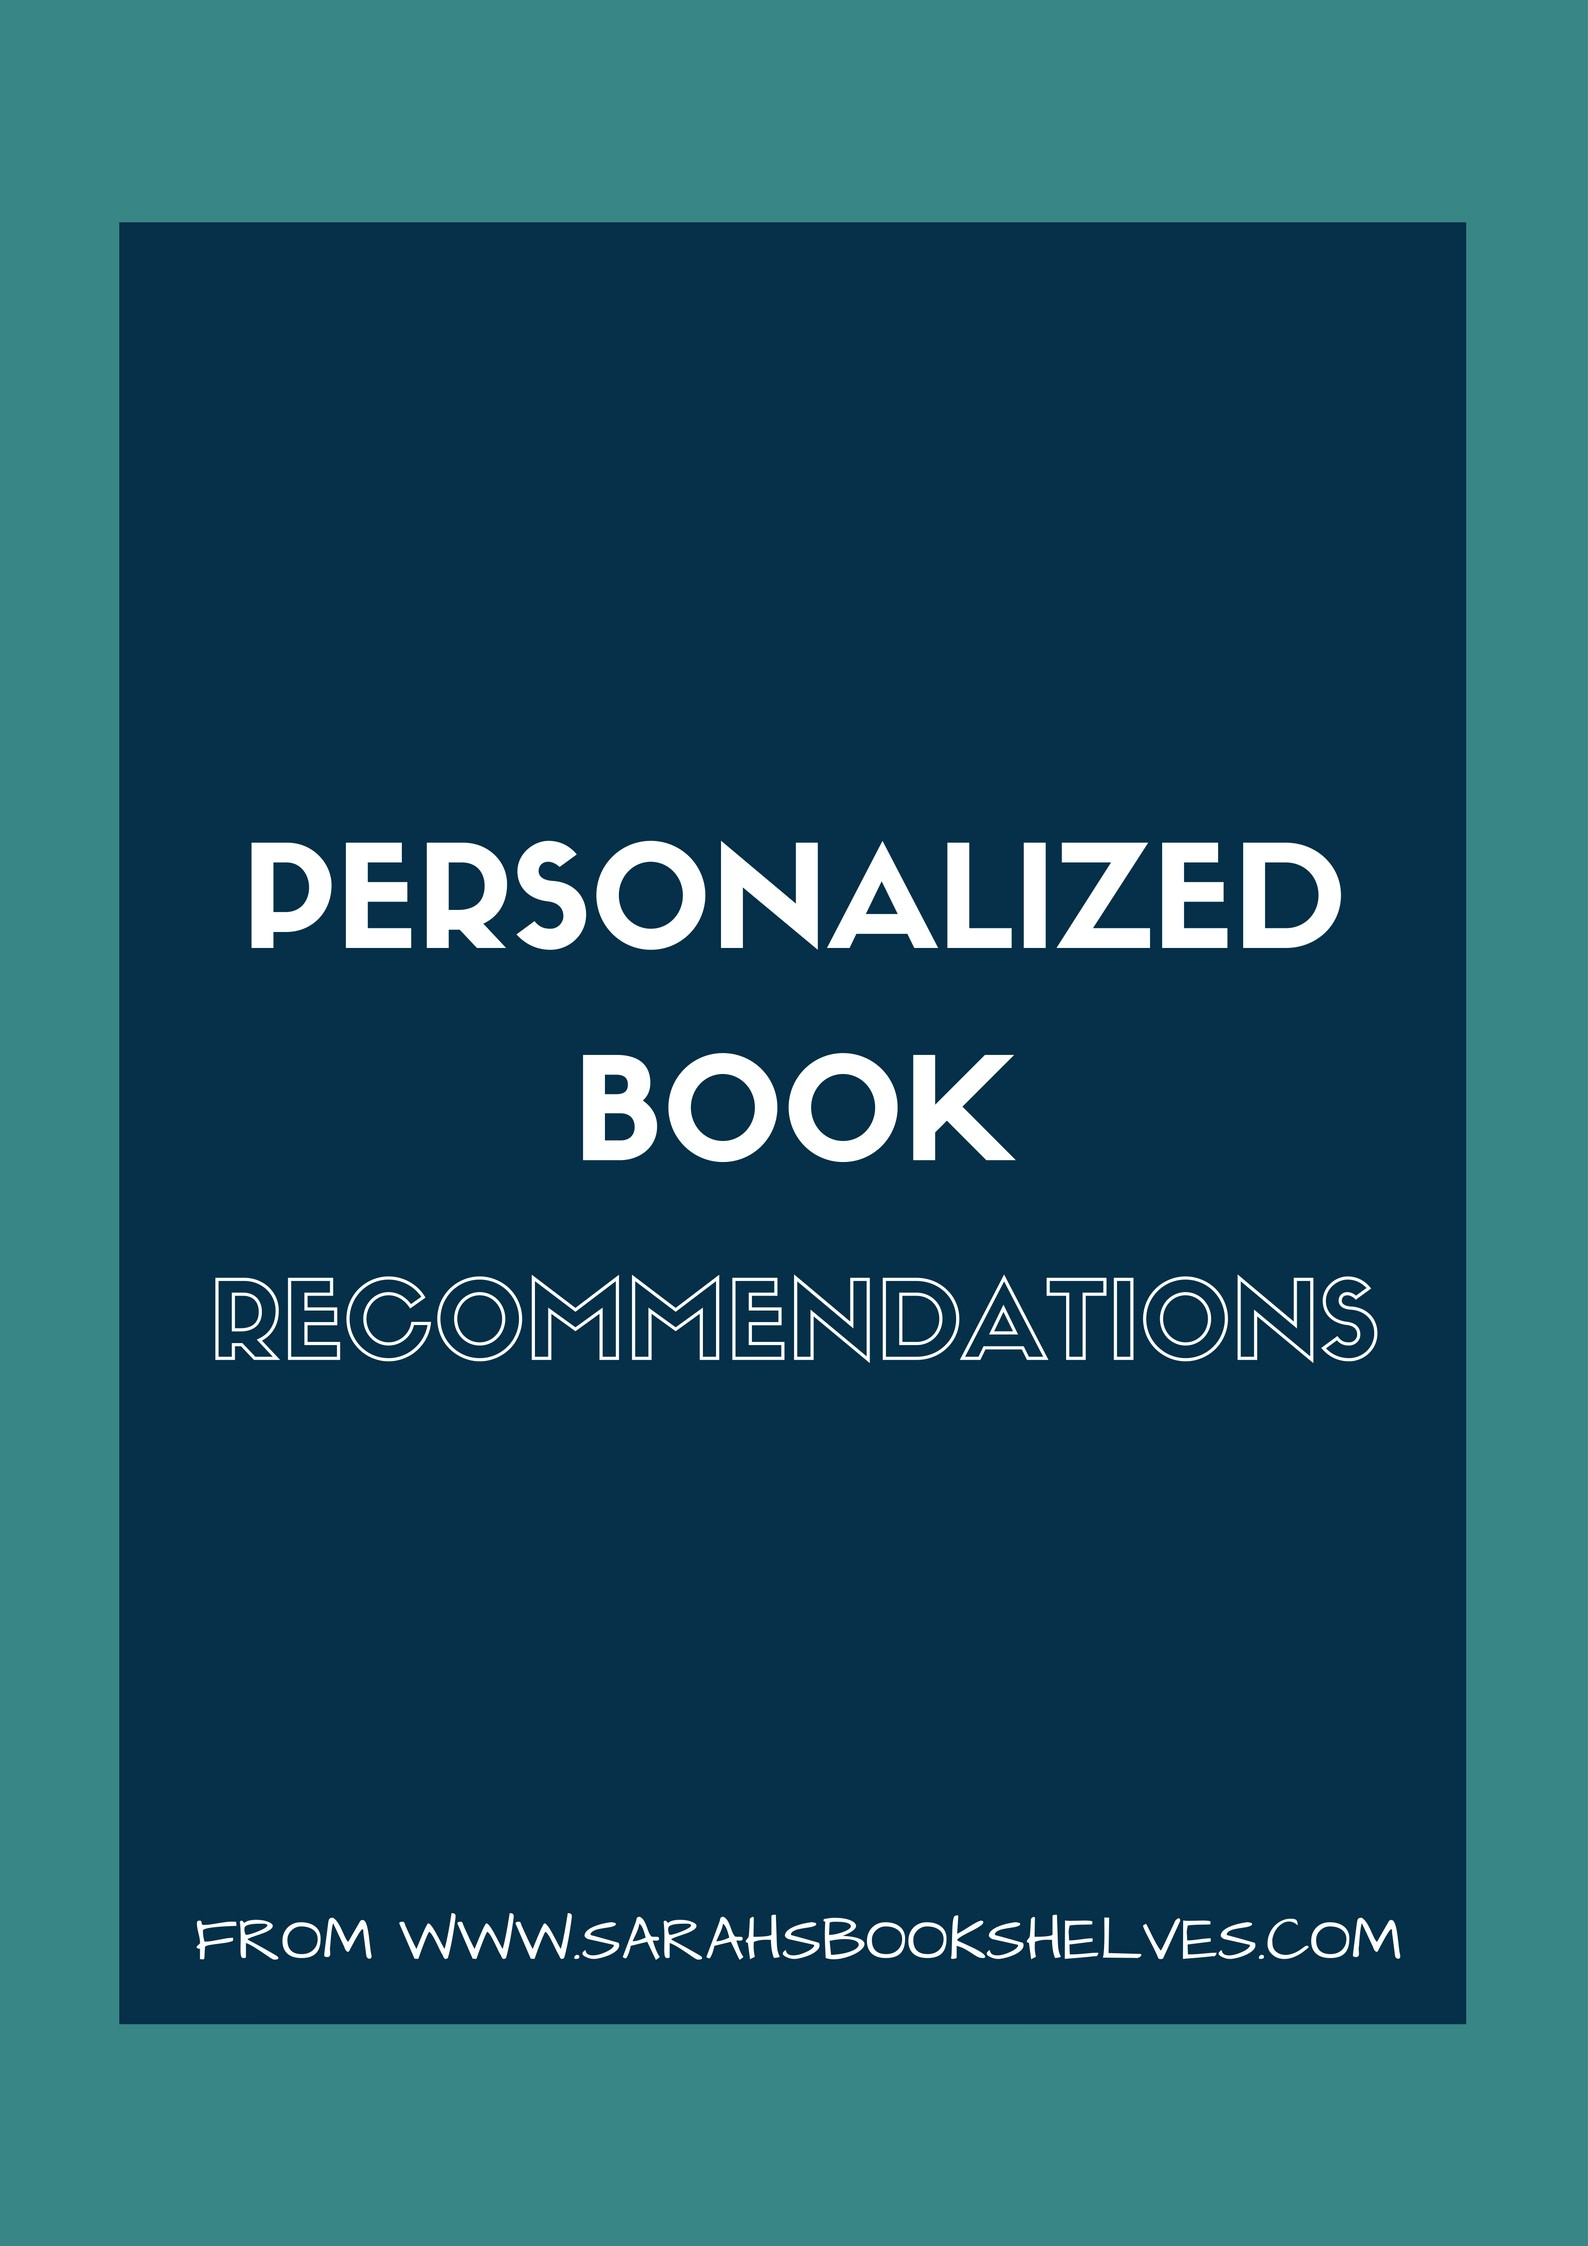 Coming soon: Personalized Book Recommendations!